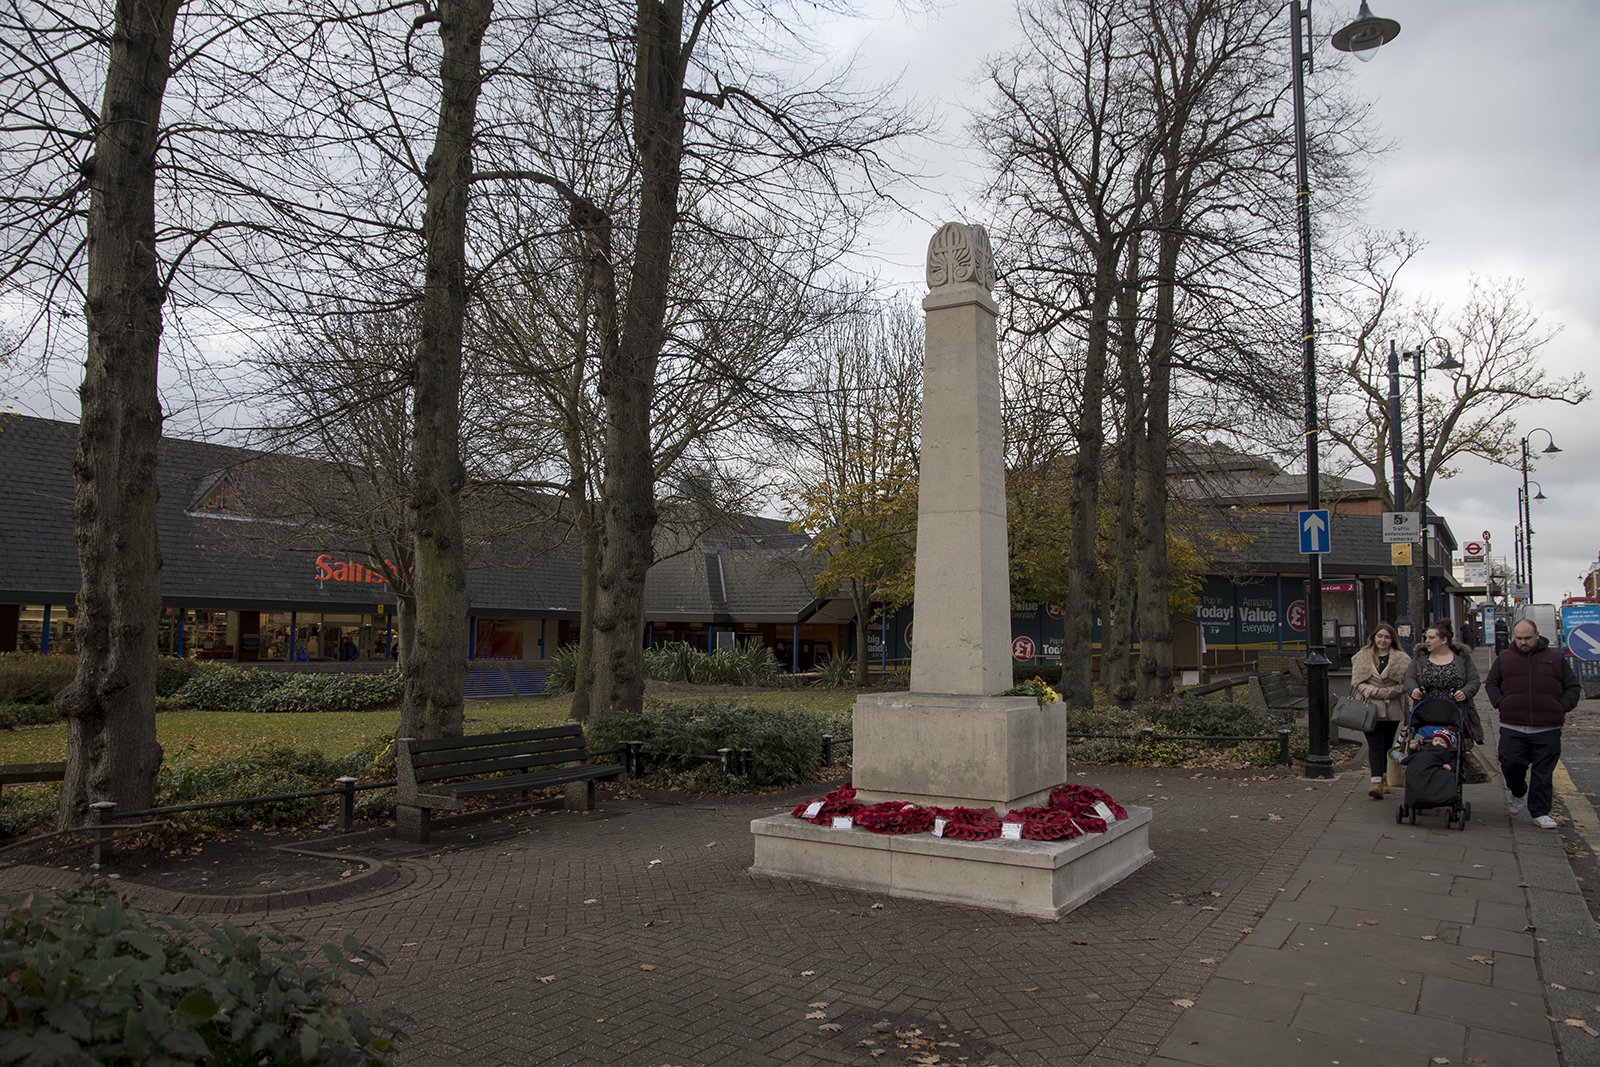 20161124_Bromley_Gipsey-Hill_Landscape_Winter_Memorial-outside-Sainsburys